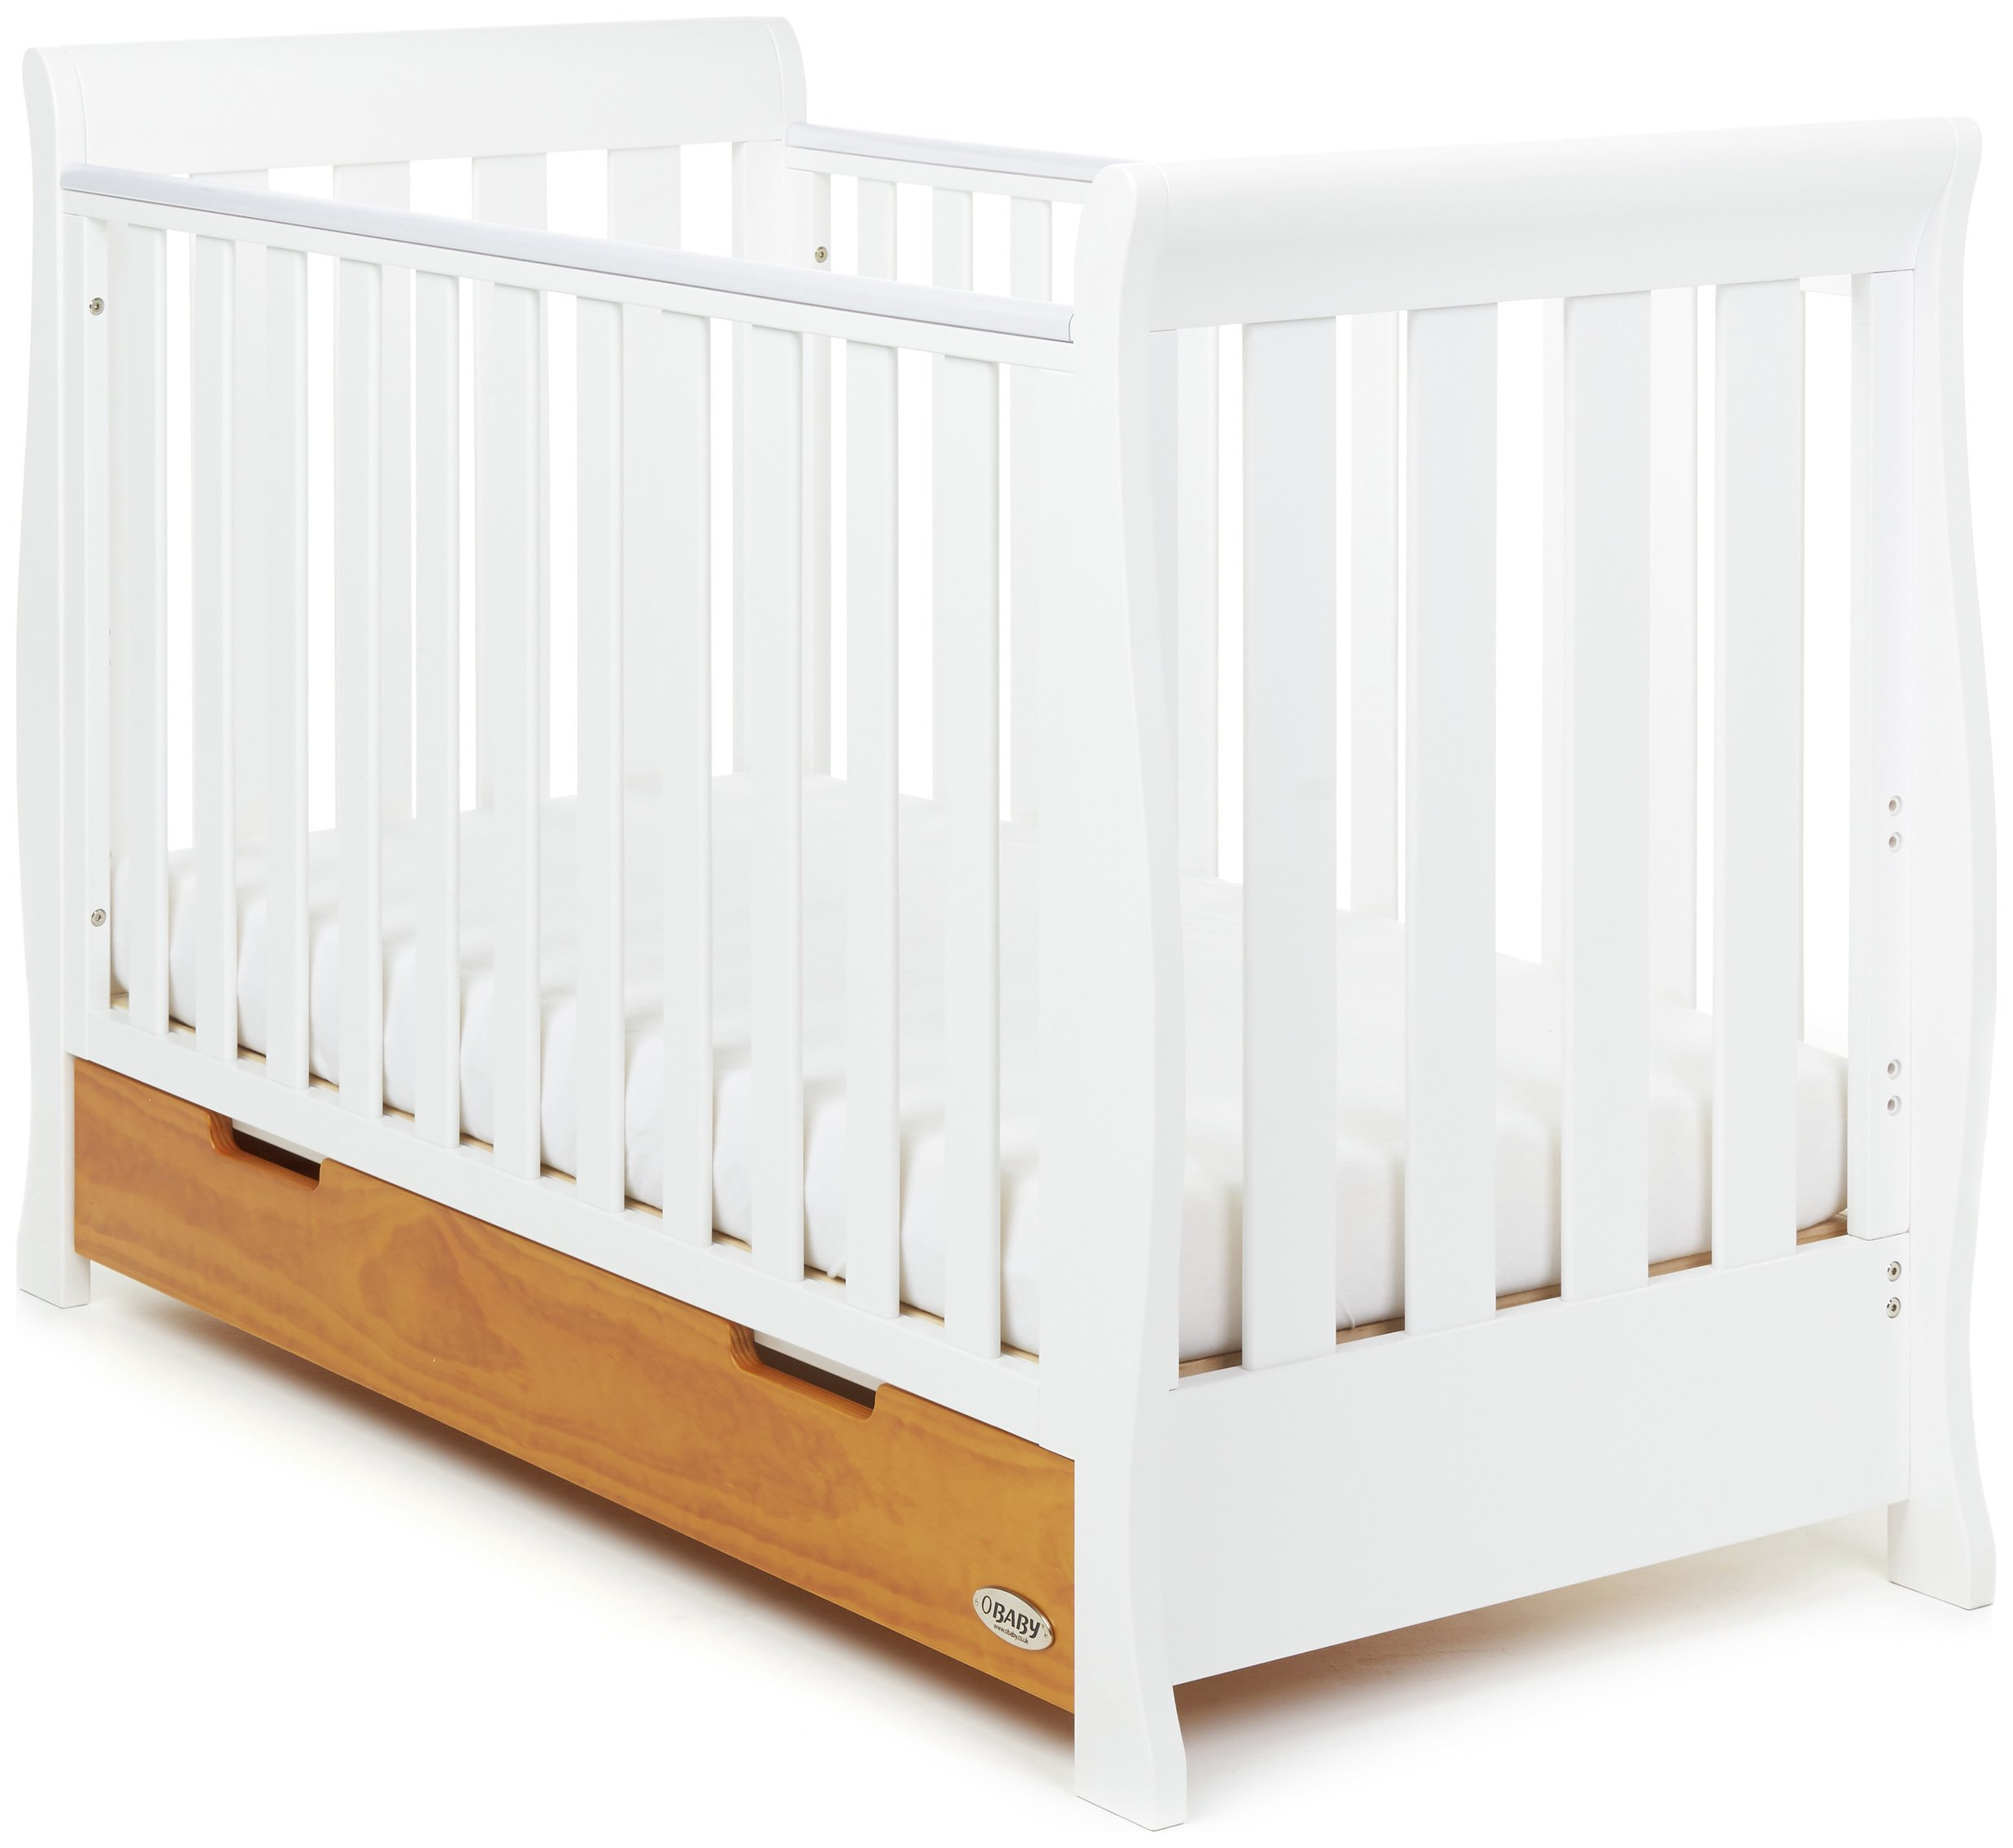 Image of Obaby Stamford Mini Sleigh Cot Bed - White & Country Pine